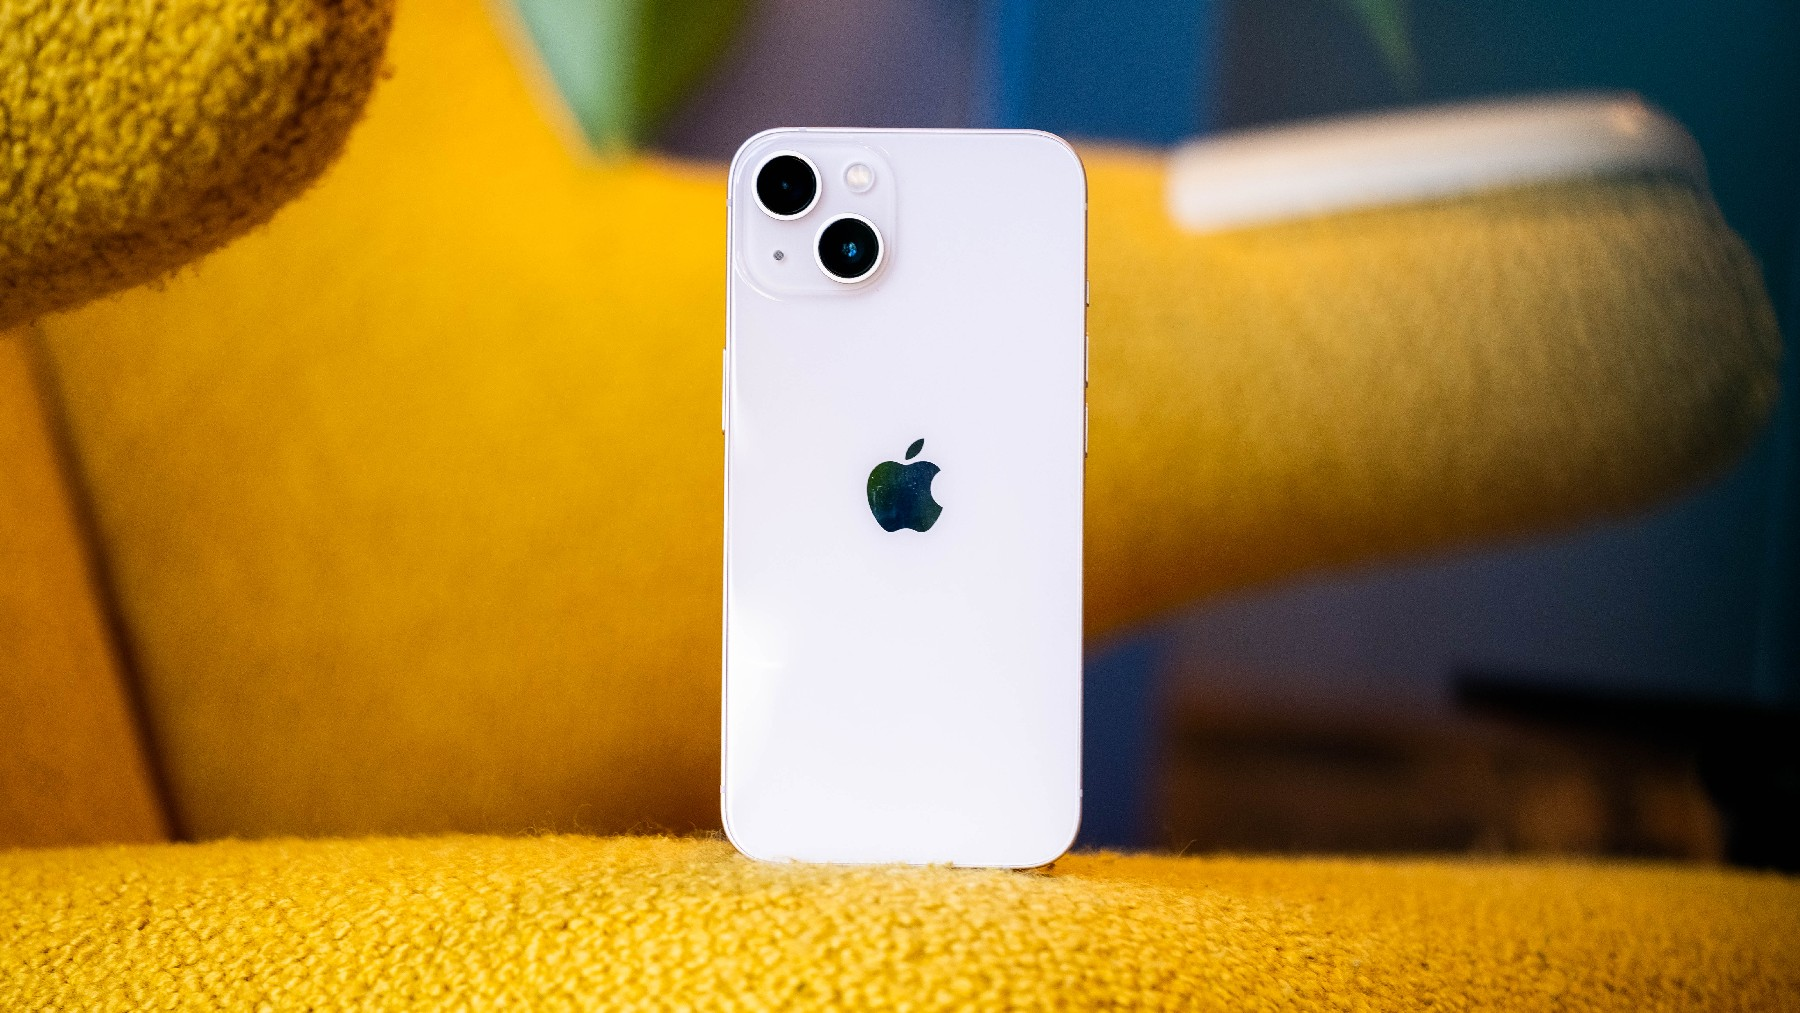 A pink iPhone 13 on a mustard-colored couch with its rear facing the camera.